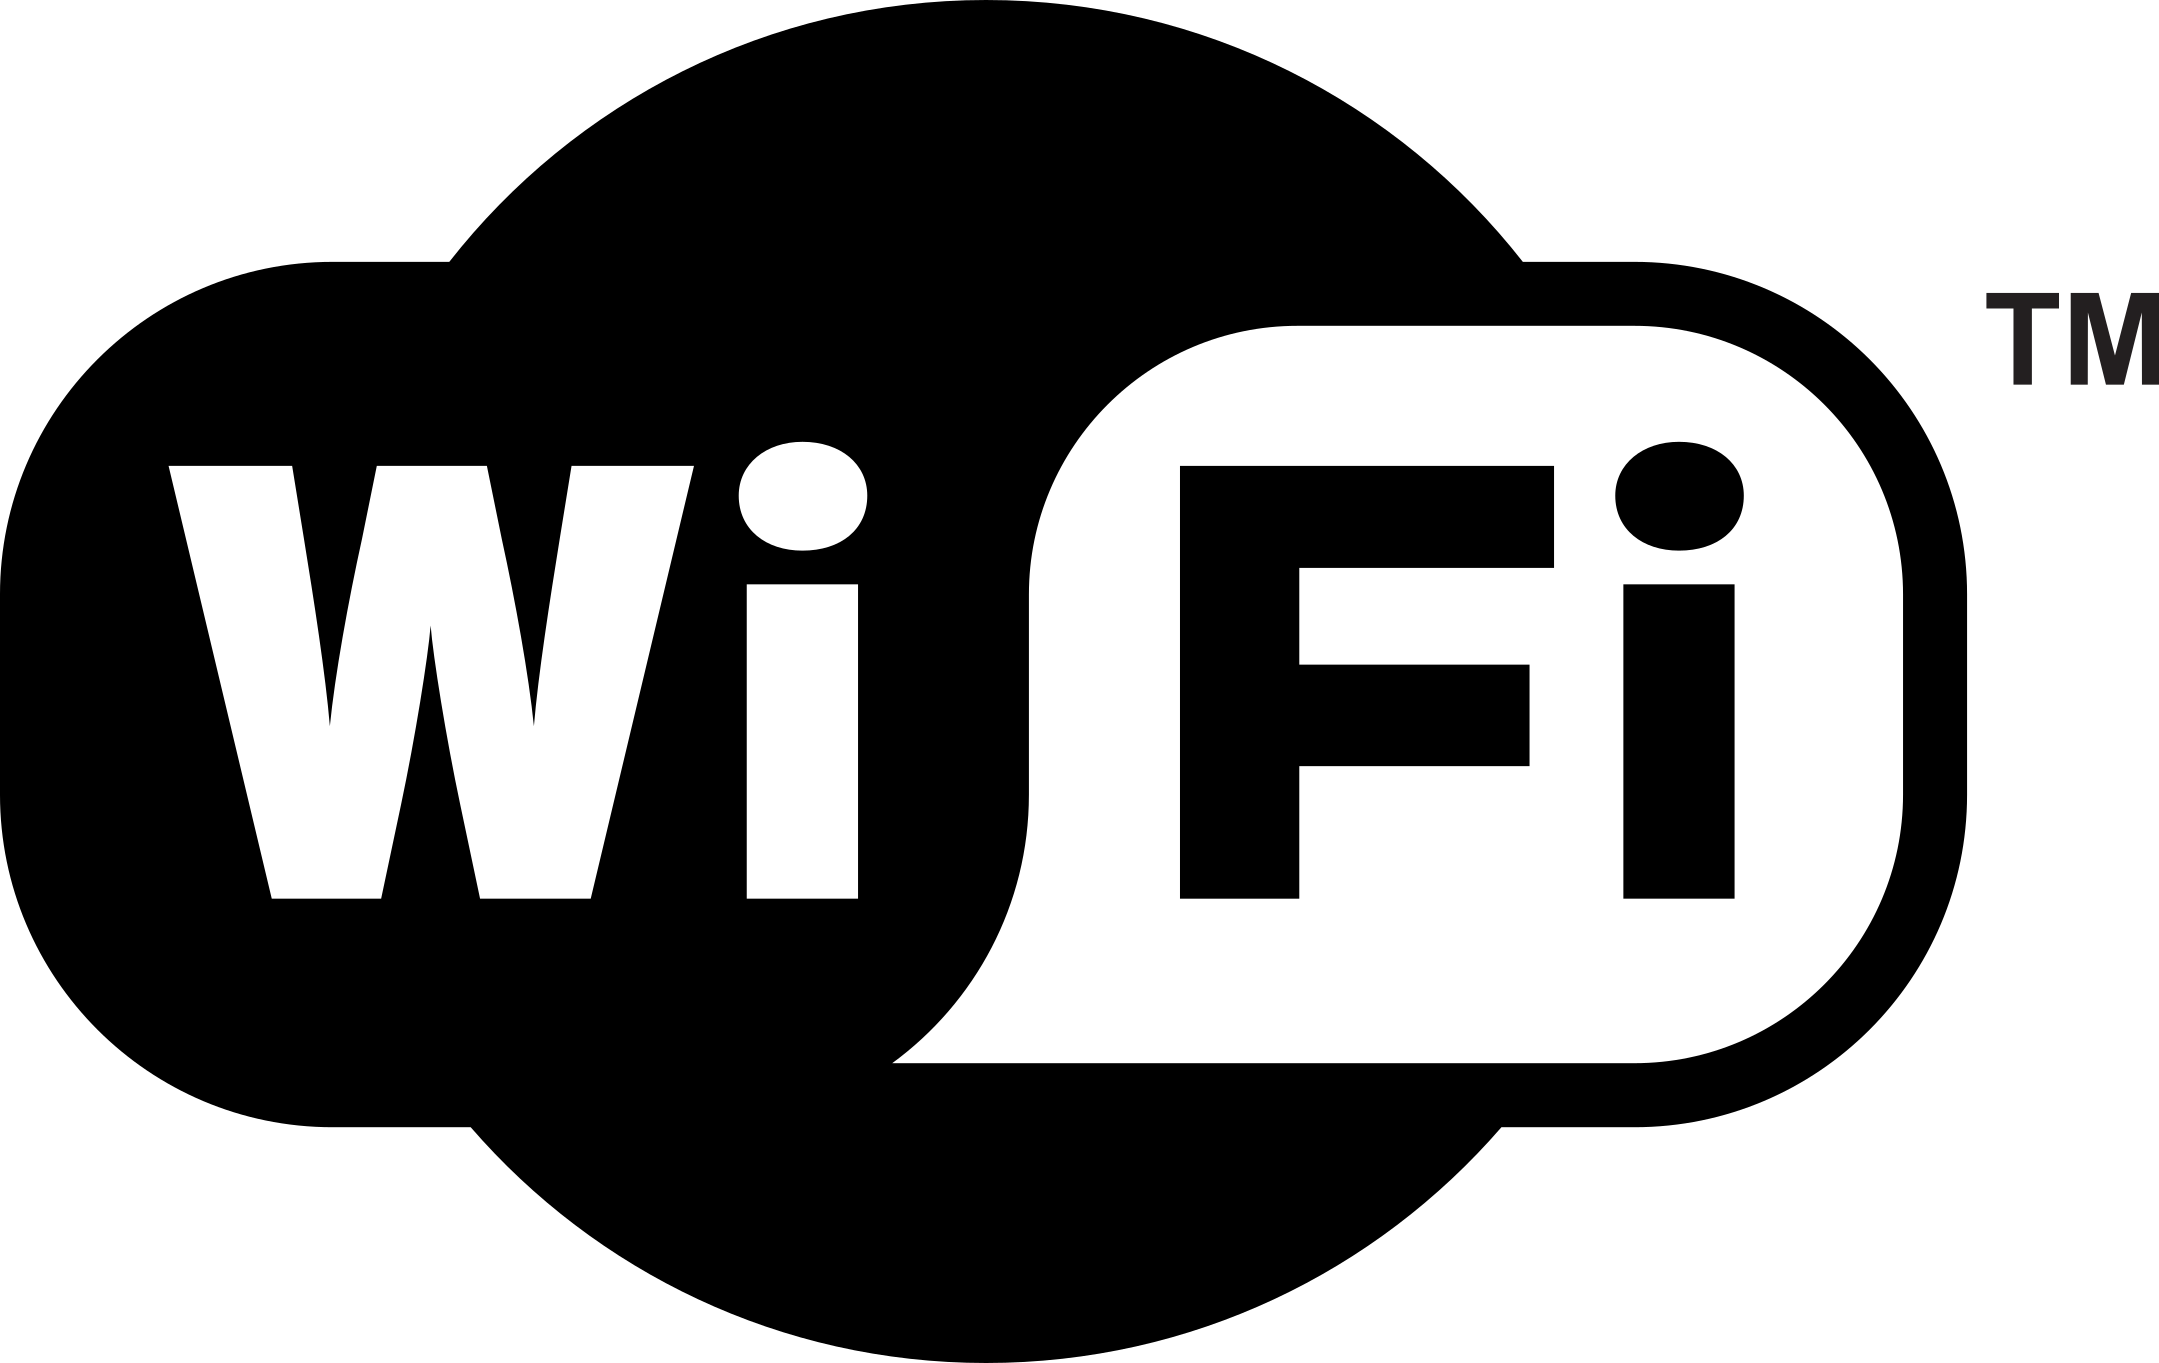 wi fi wireless logo 1 - Wi-fi Logo - Wireless Logo